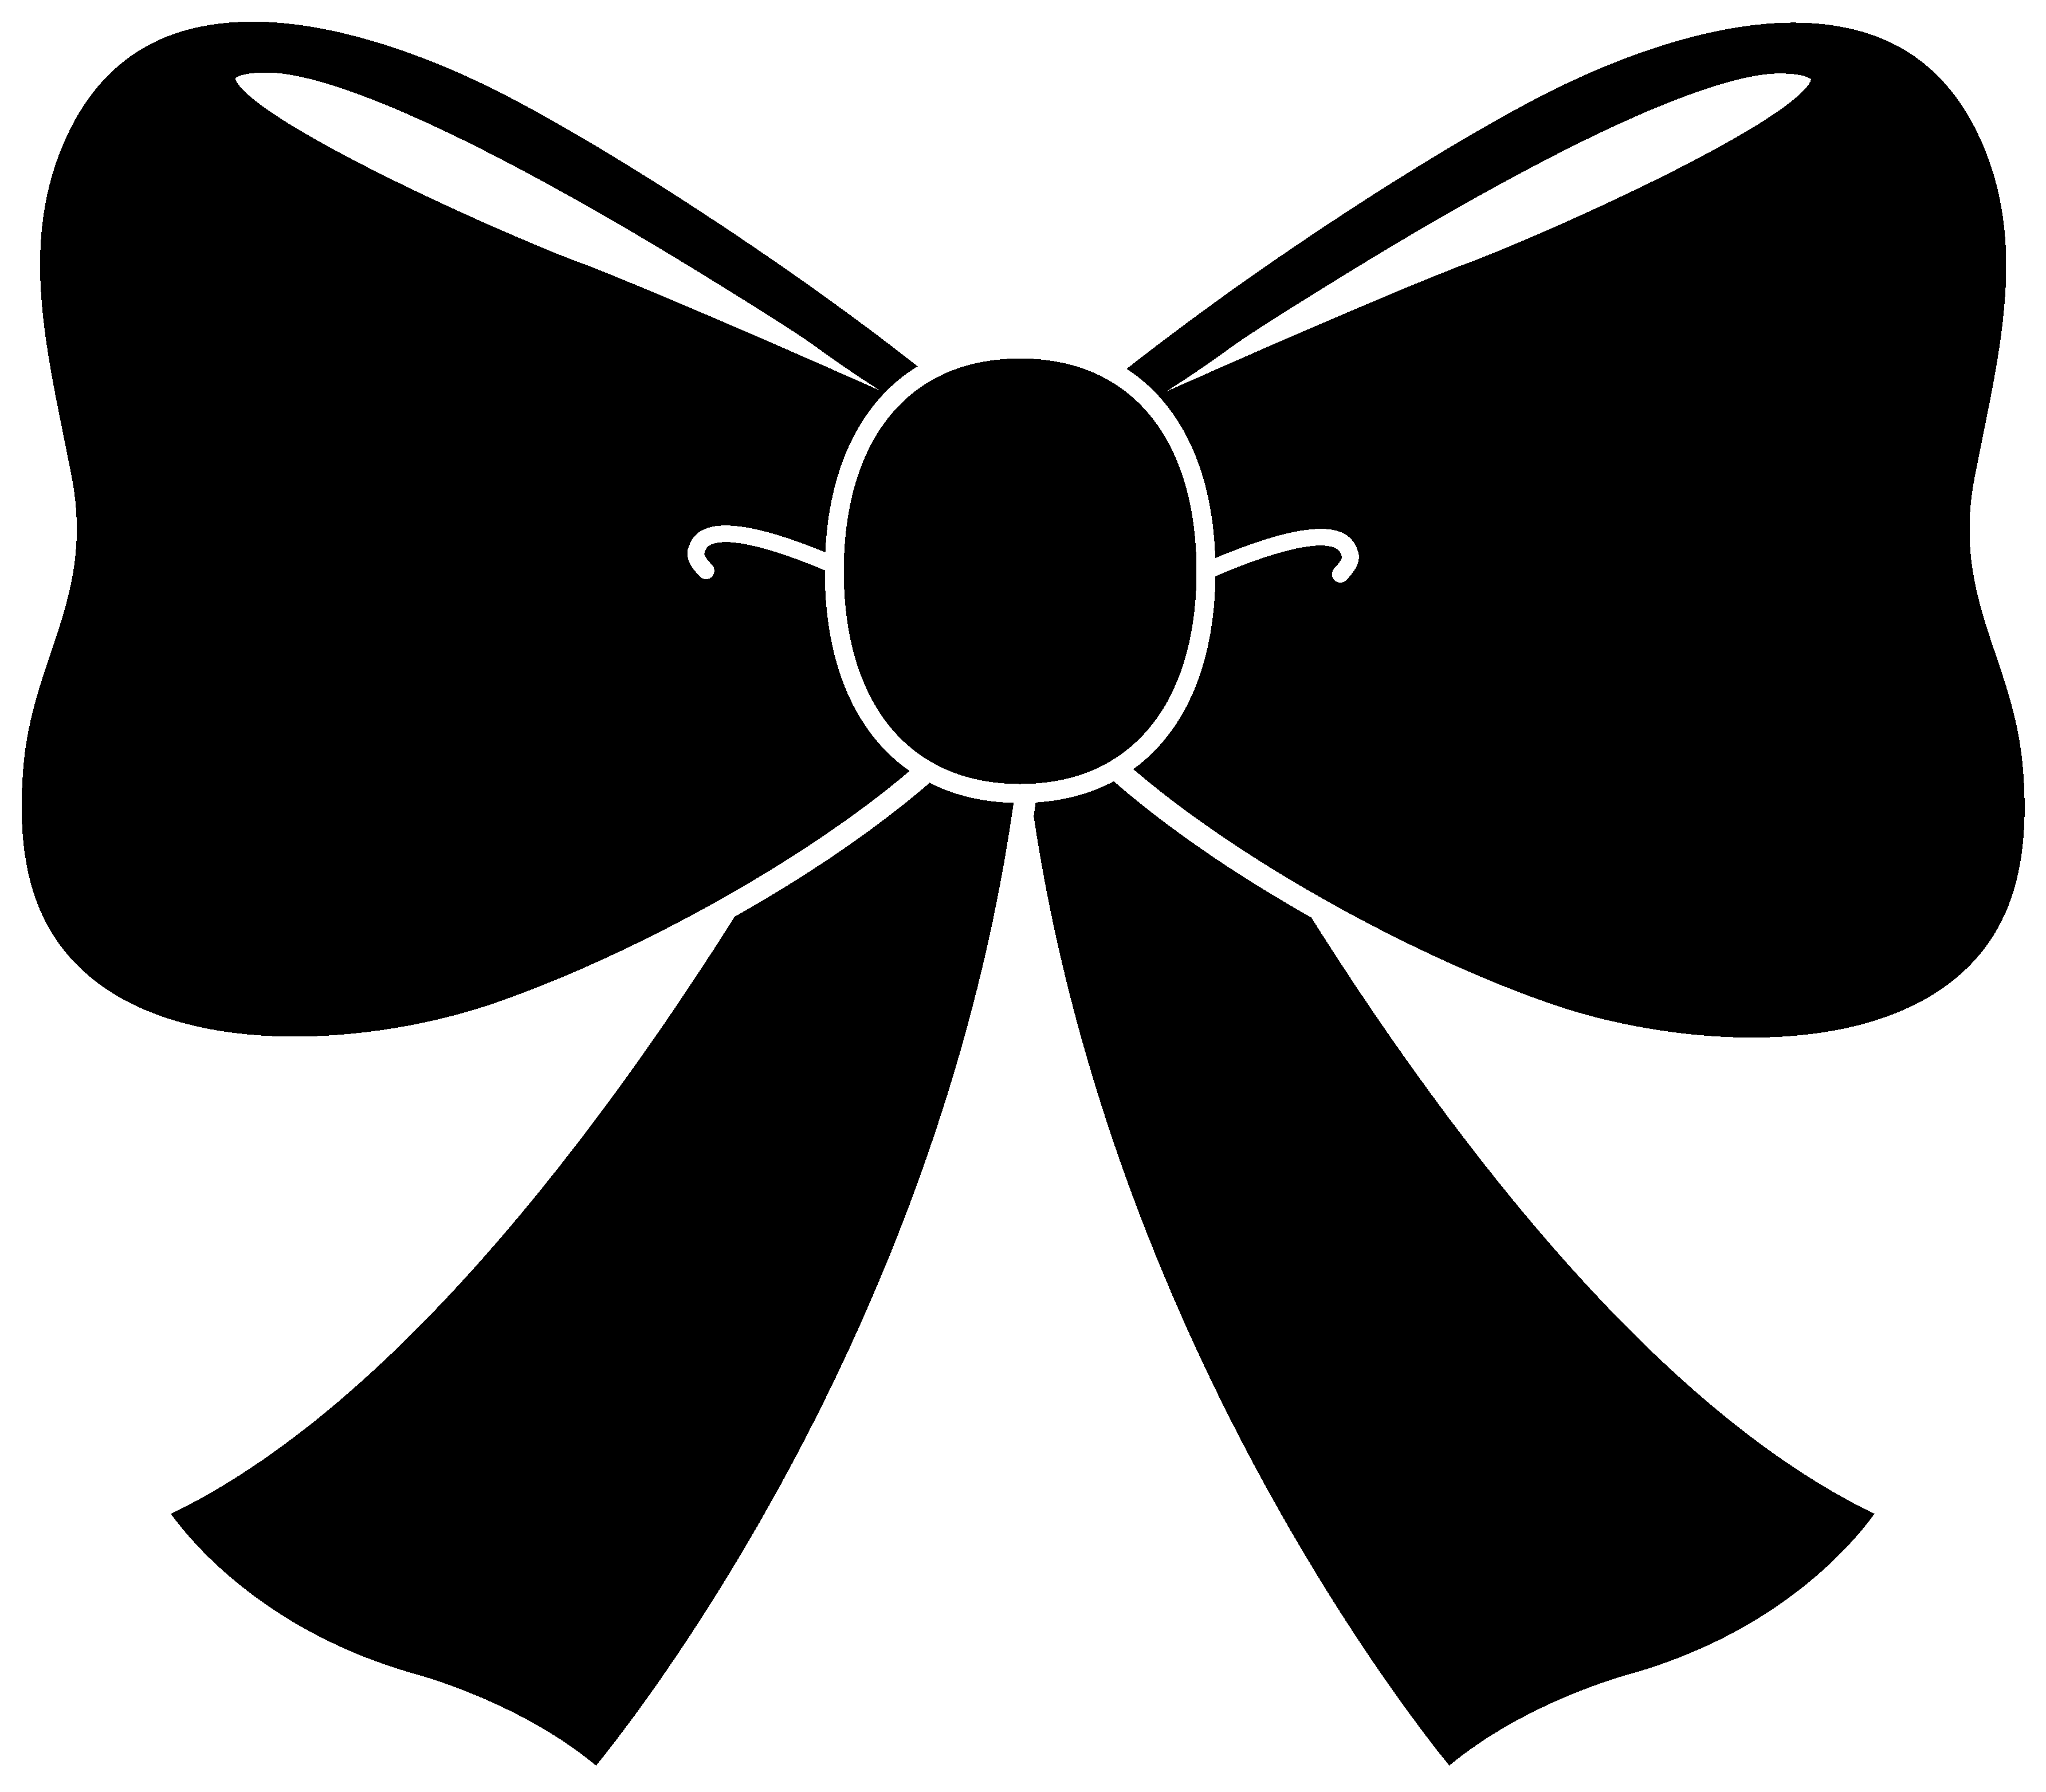 Cute Black Bow Clipart